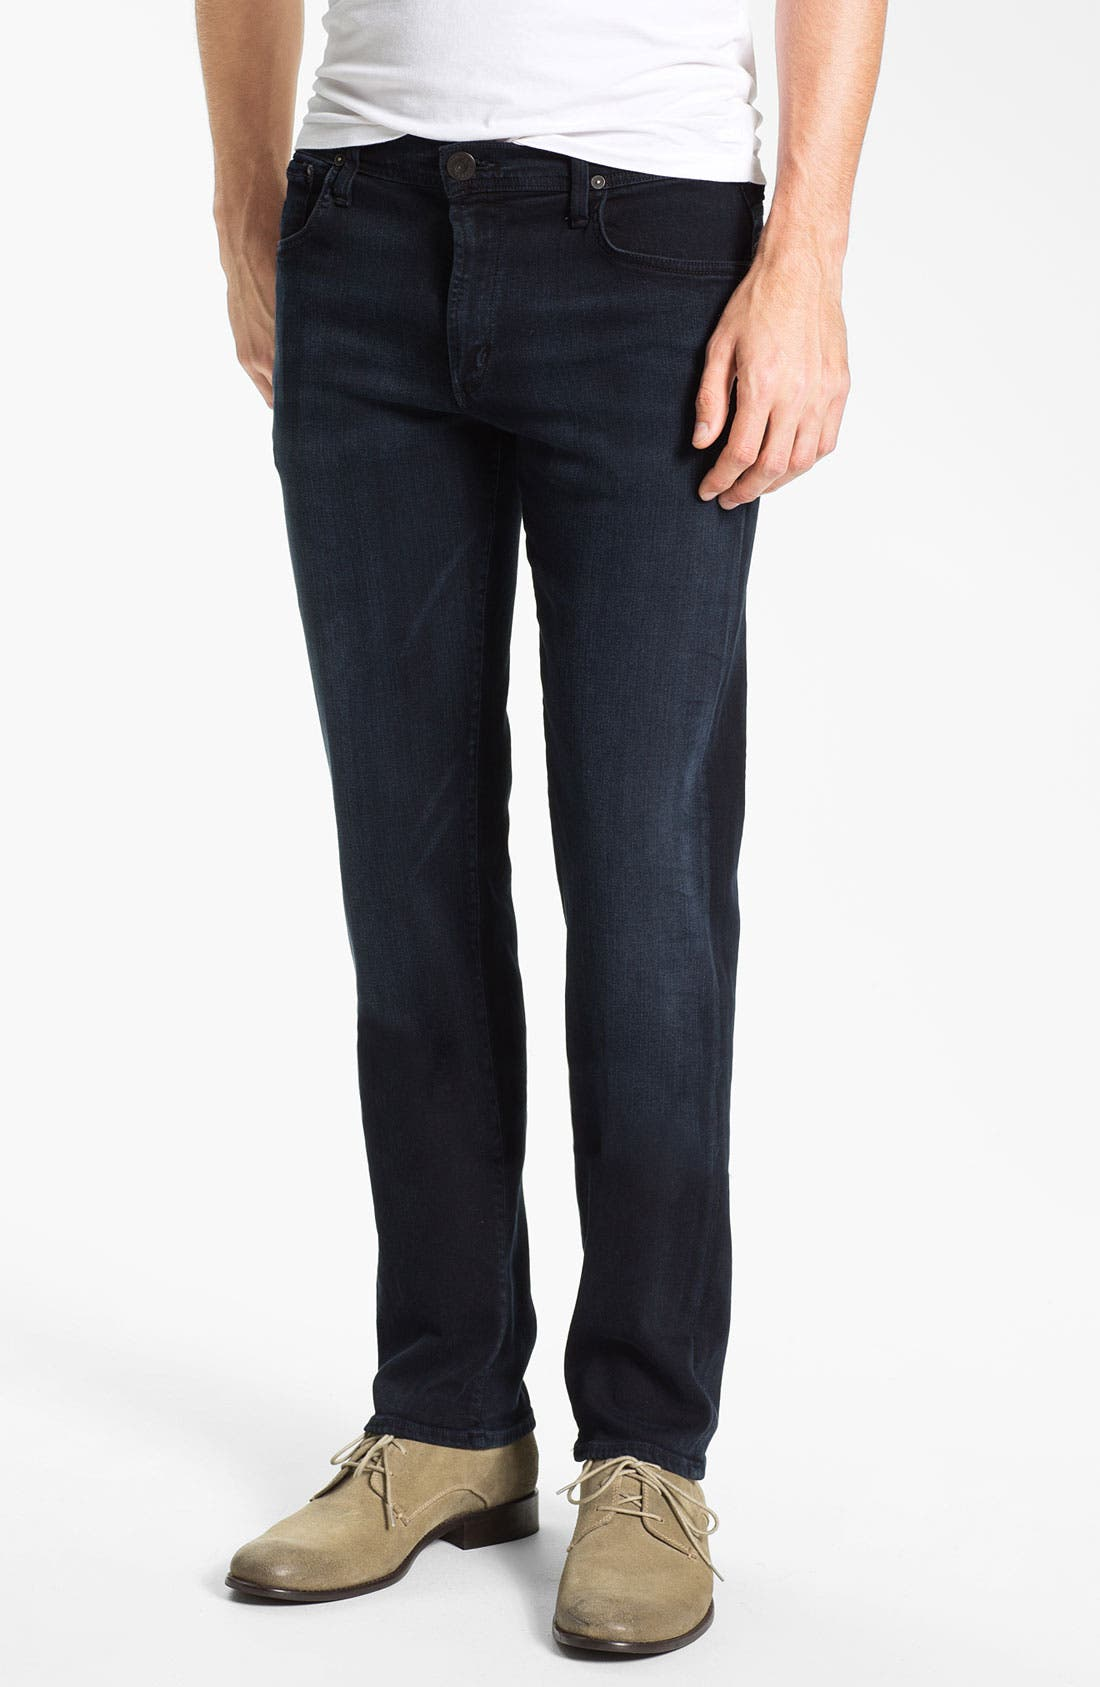 Alternate Image 1 Selected - Citizens of Humanity 'Adonis' Comfort Slim Fit Jeans (Walker Blue)